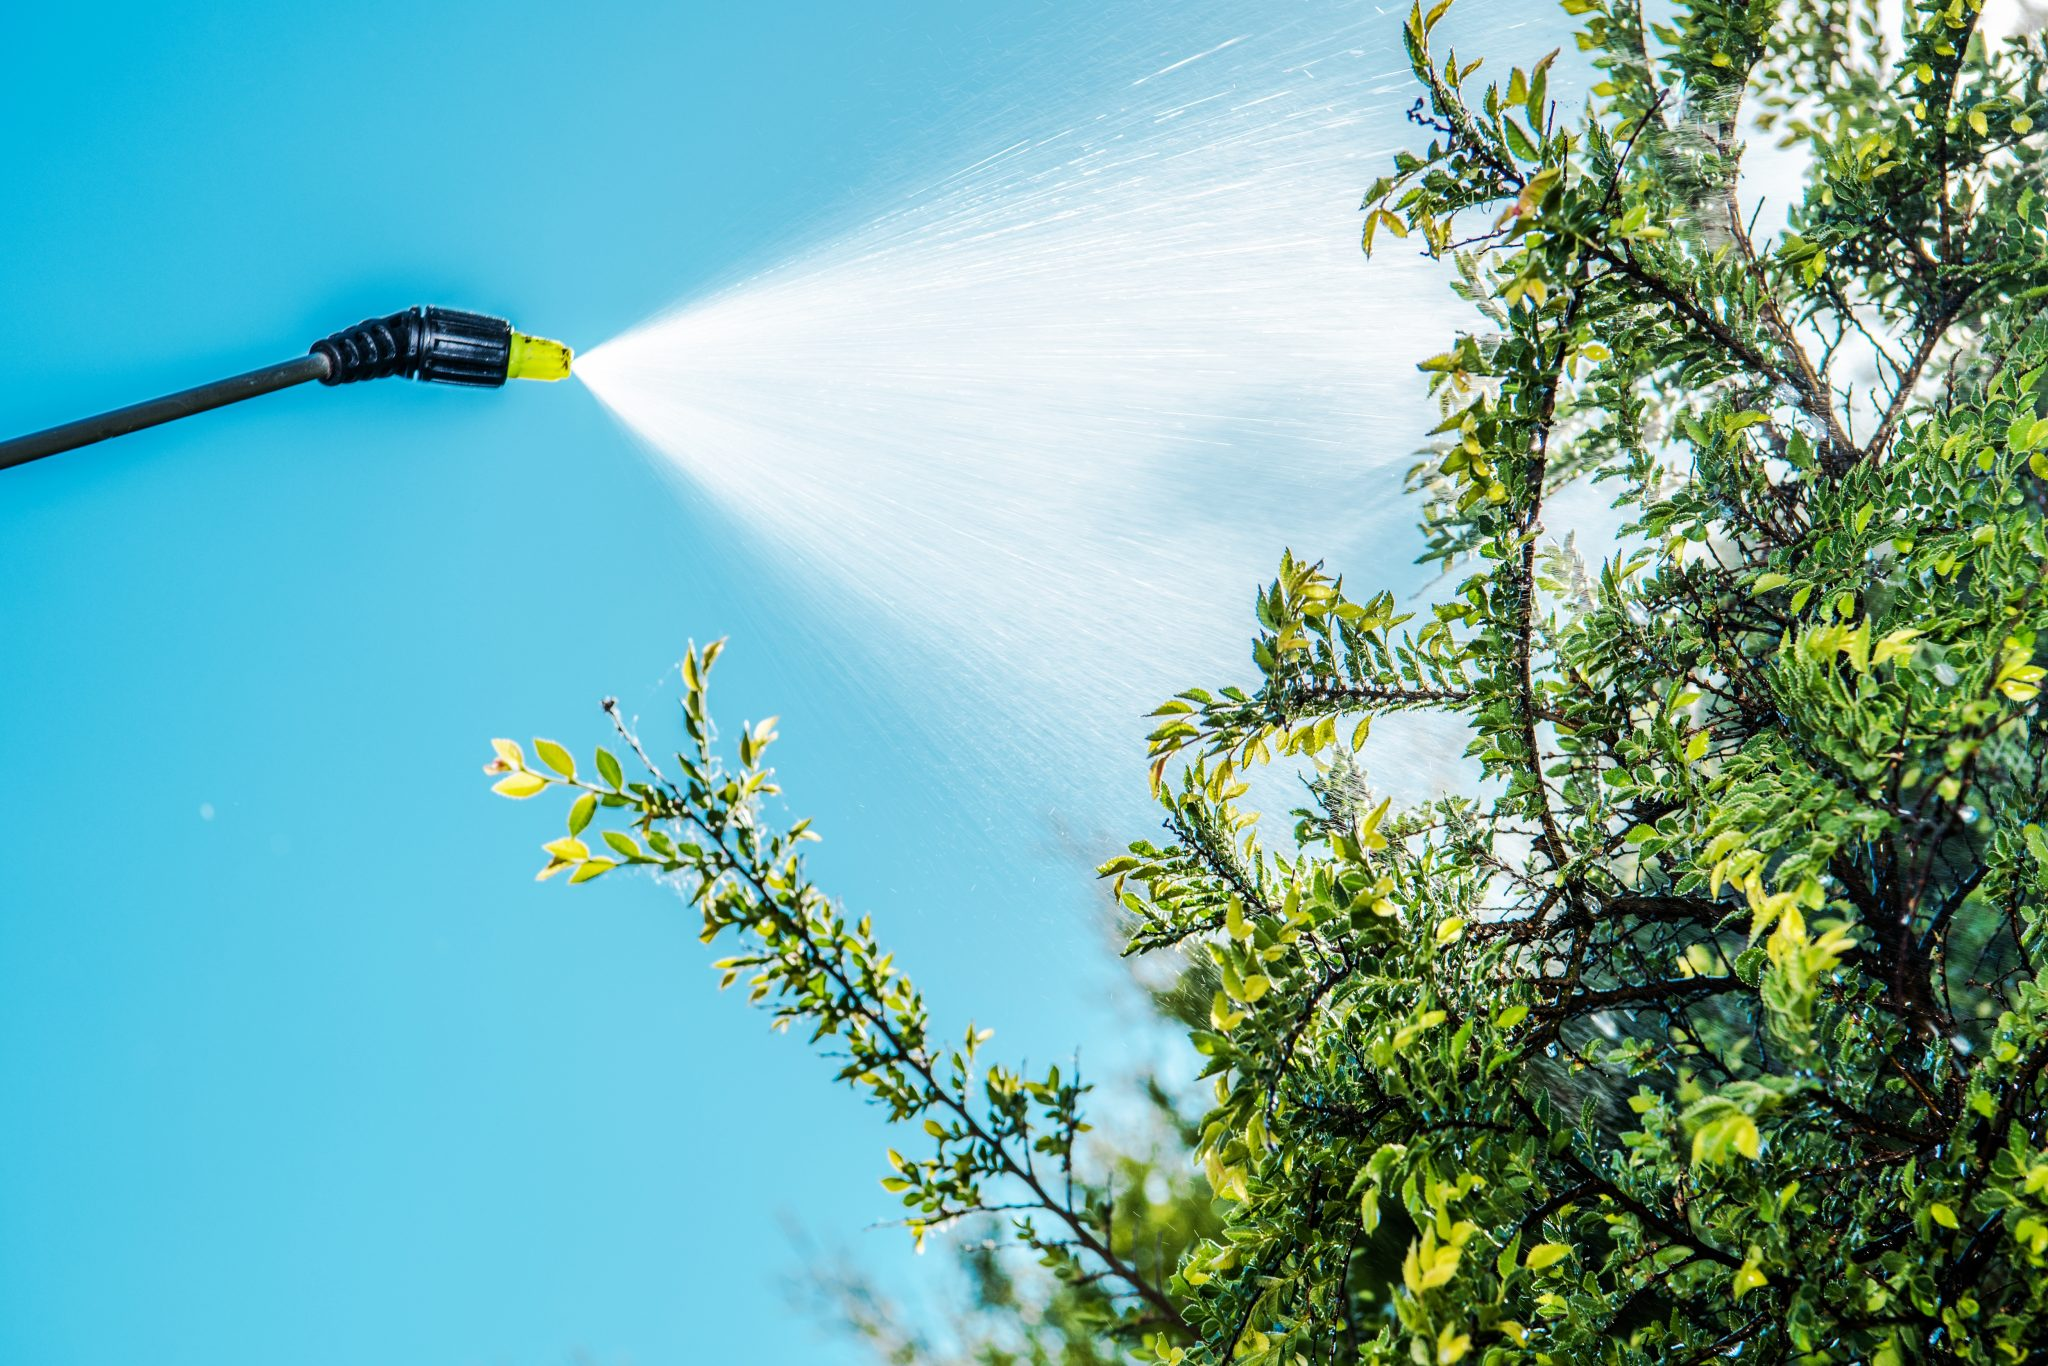 Tree Service Provides Treatment for Scale Insects